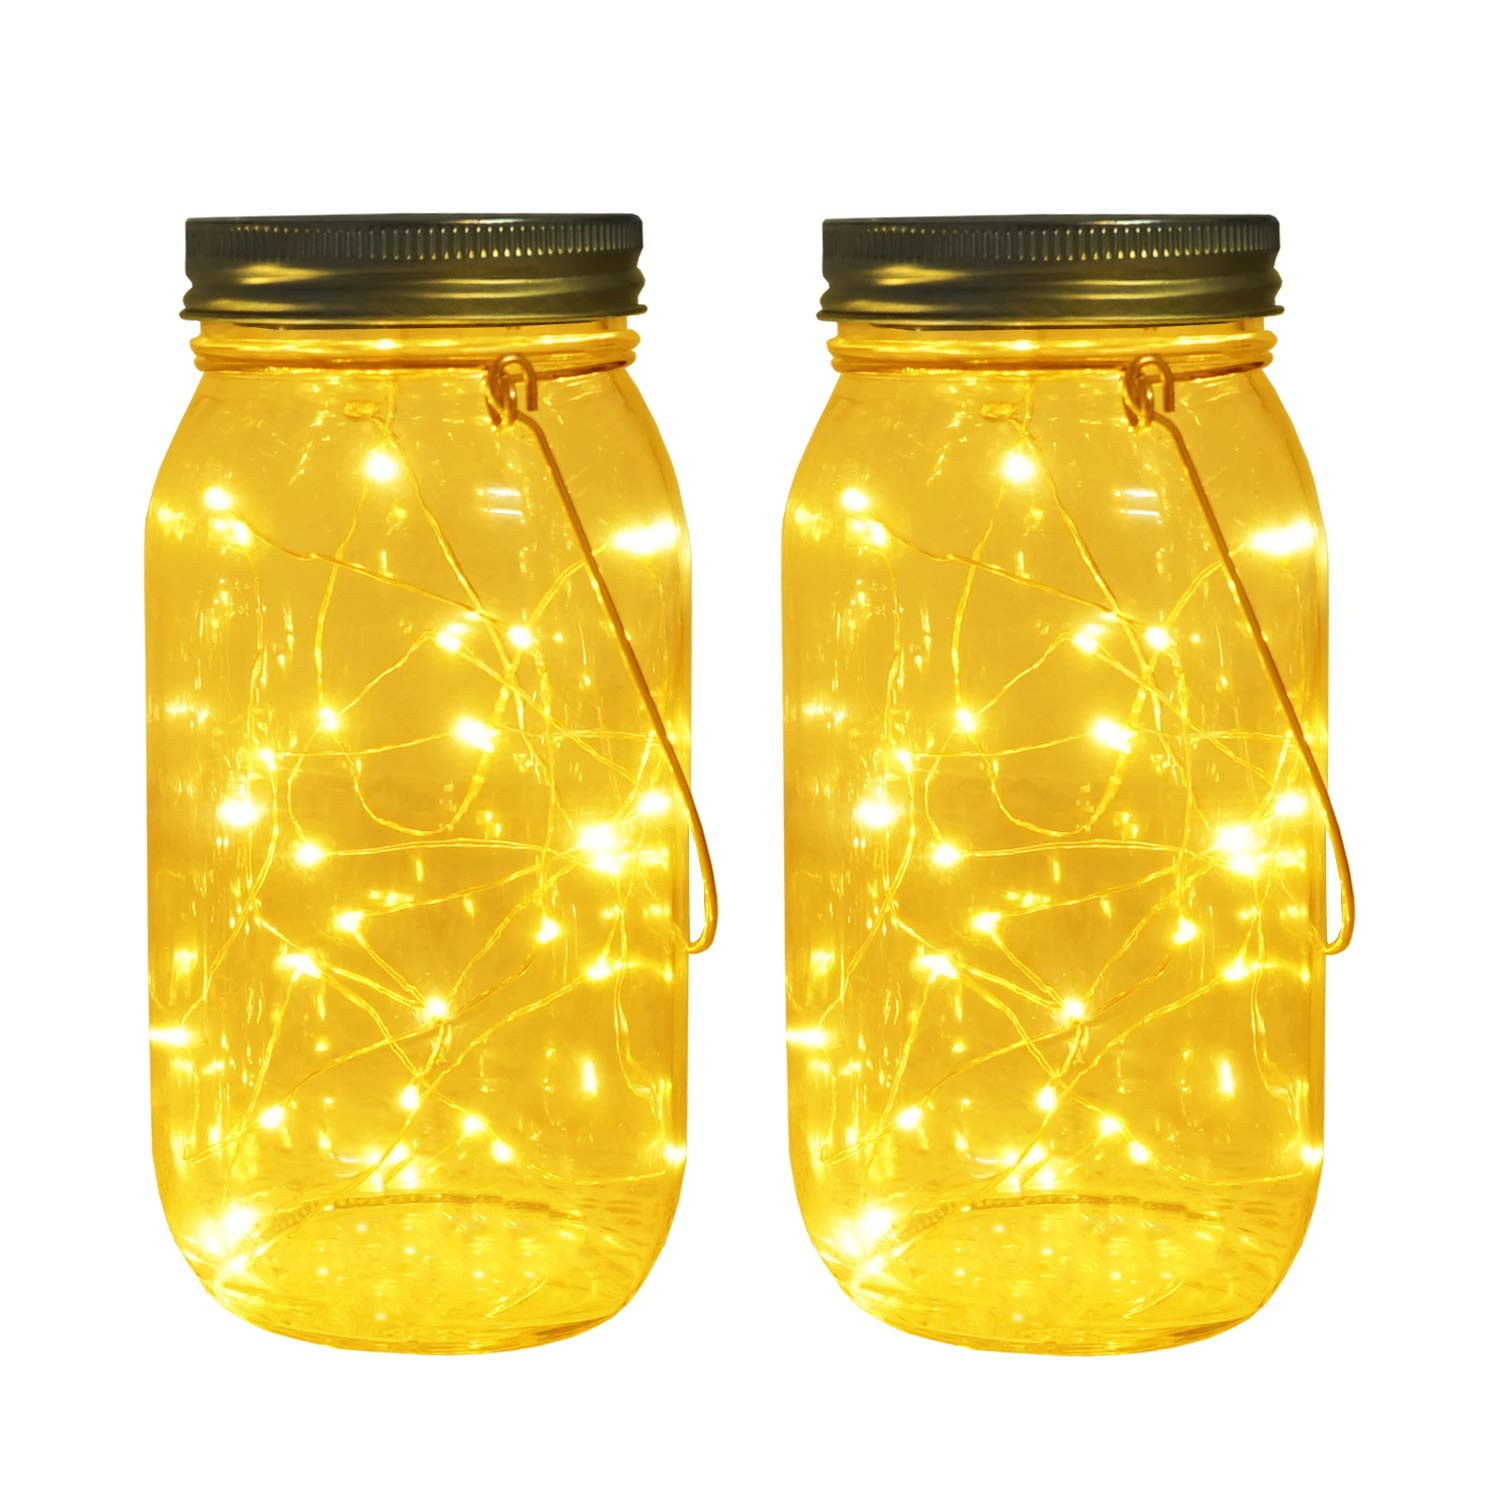 Solar Mason Jar Lights, Large Size Bigger Glass Mason Jar with 30 LEDs Fairy Firefly String Lights, Best Patio Yard Desktop Party Decor Outdoor Solar Hanging Lanterns